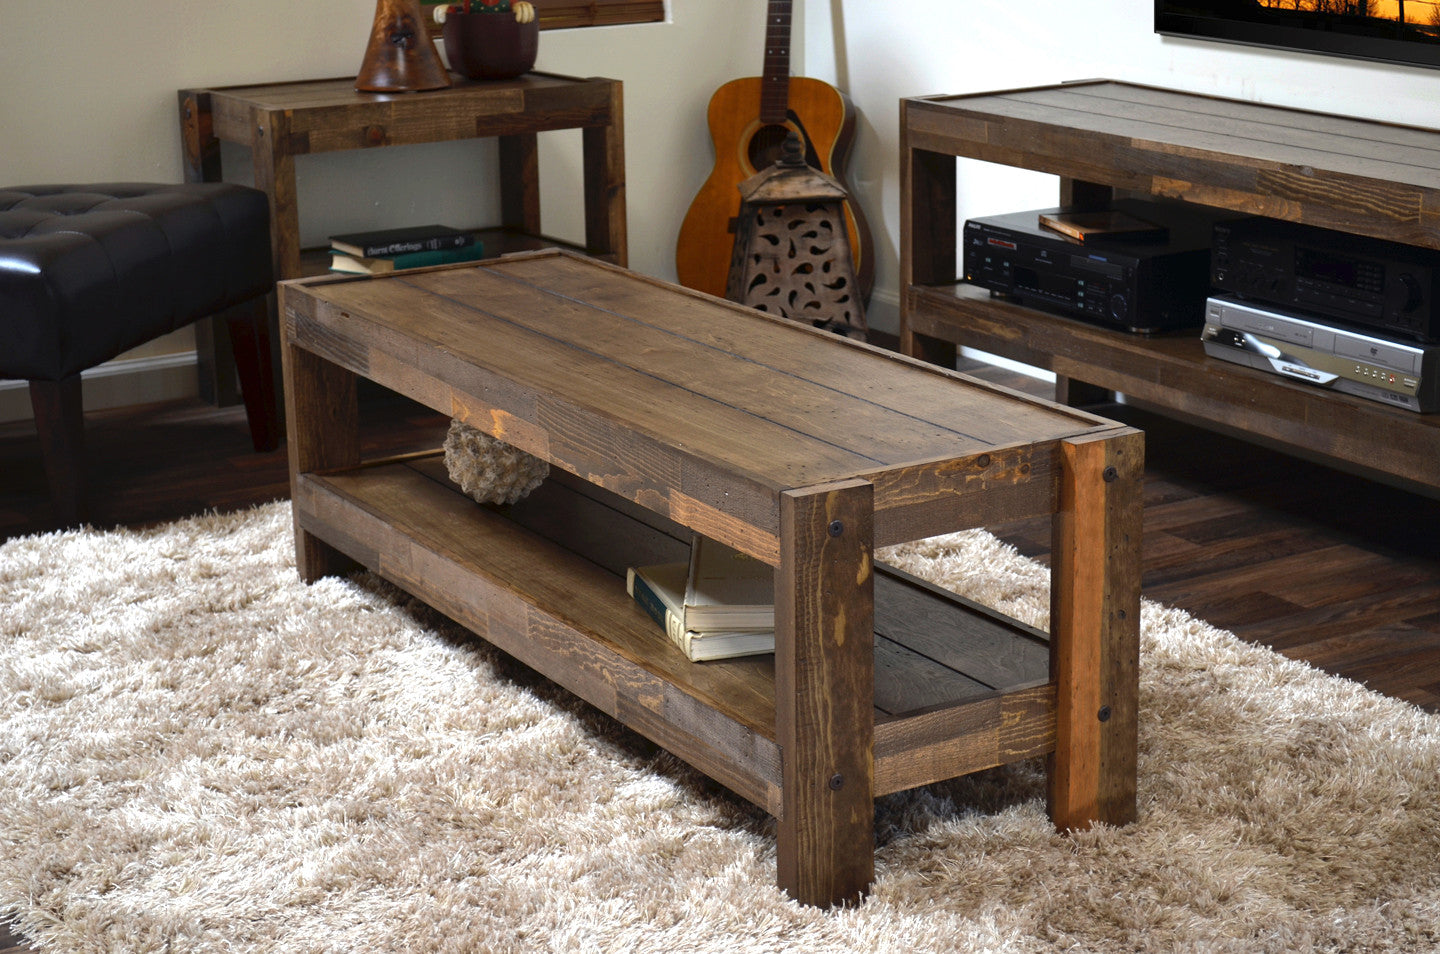 Rustic reclaimed pallet wood style entertainment center tv stand rustic reclaimed pallet wood style entertainment center tv stand coffee table presearth spice geotapseo Image collections